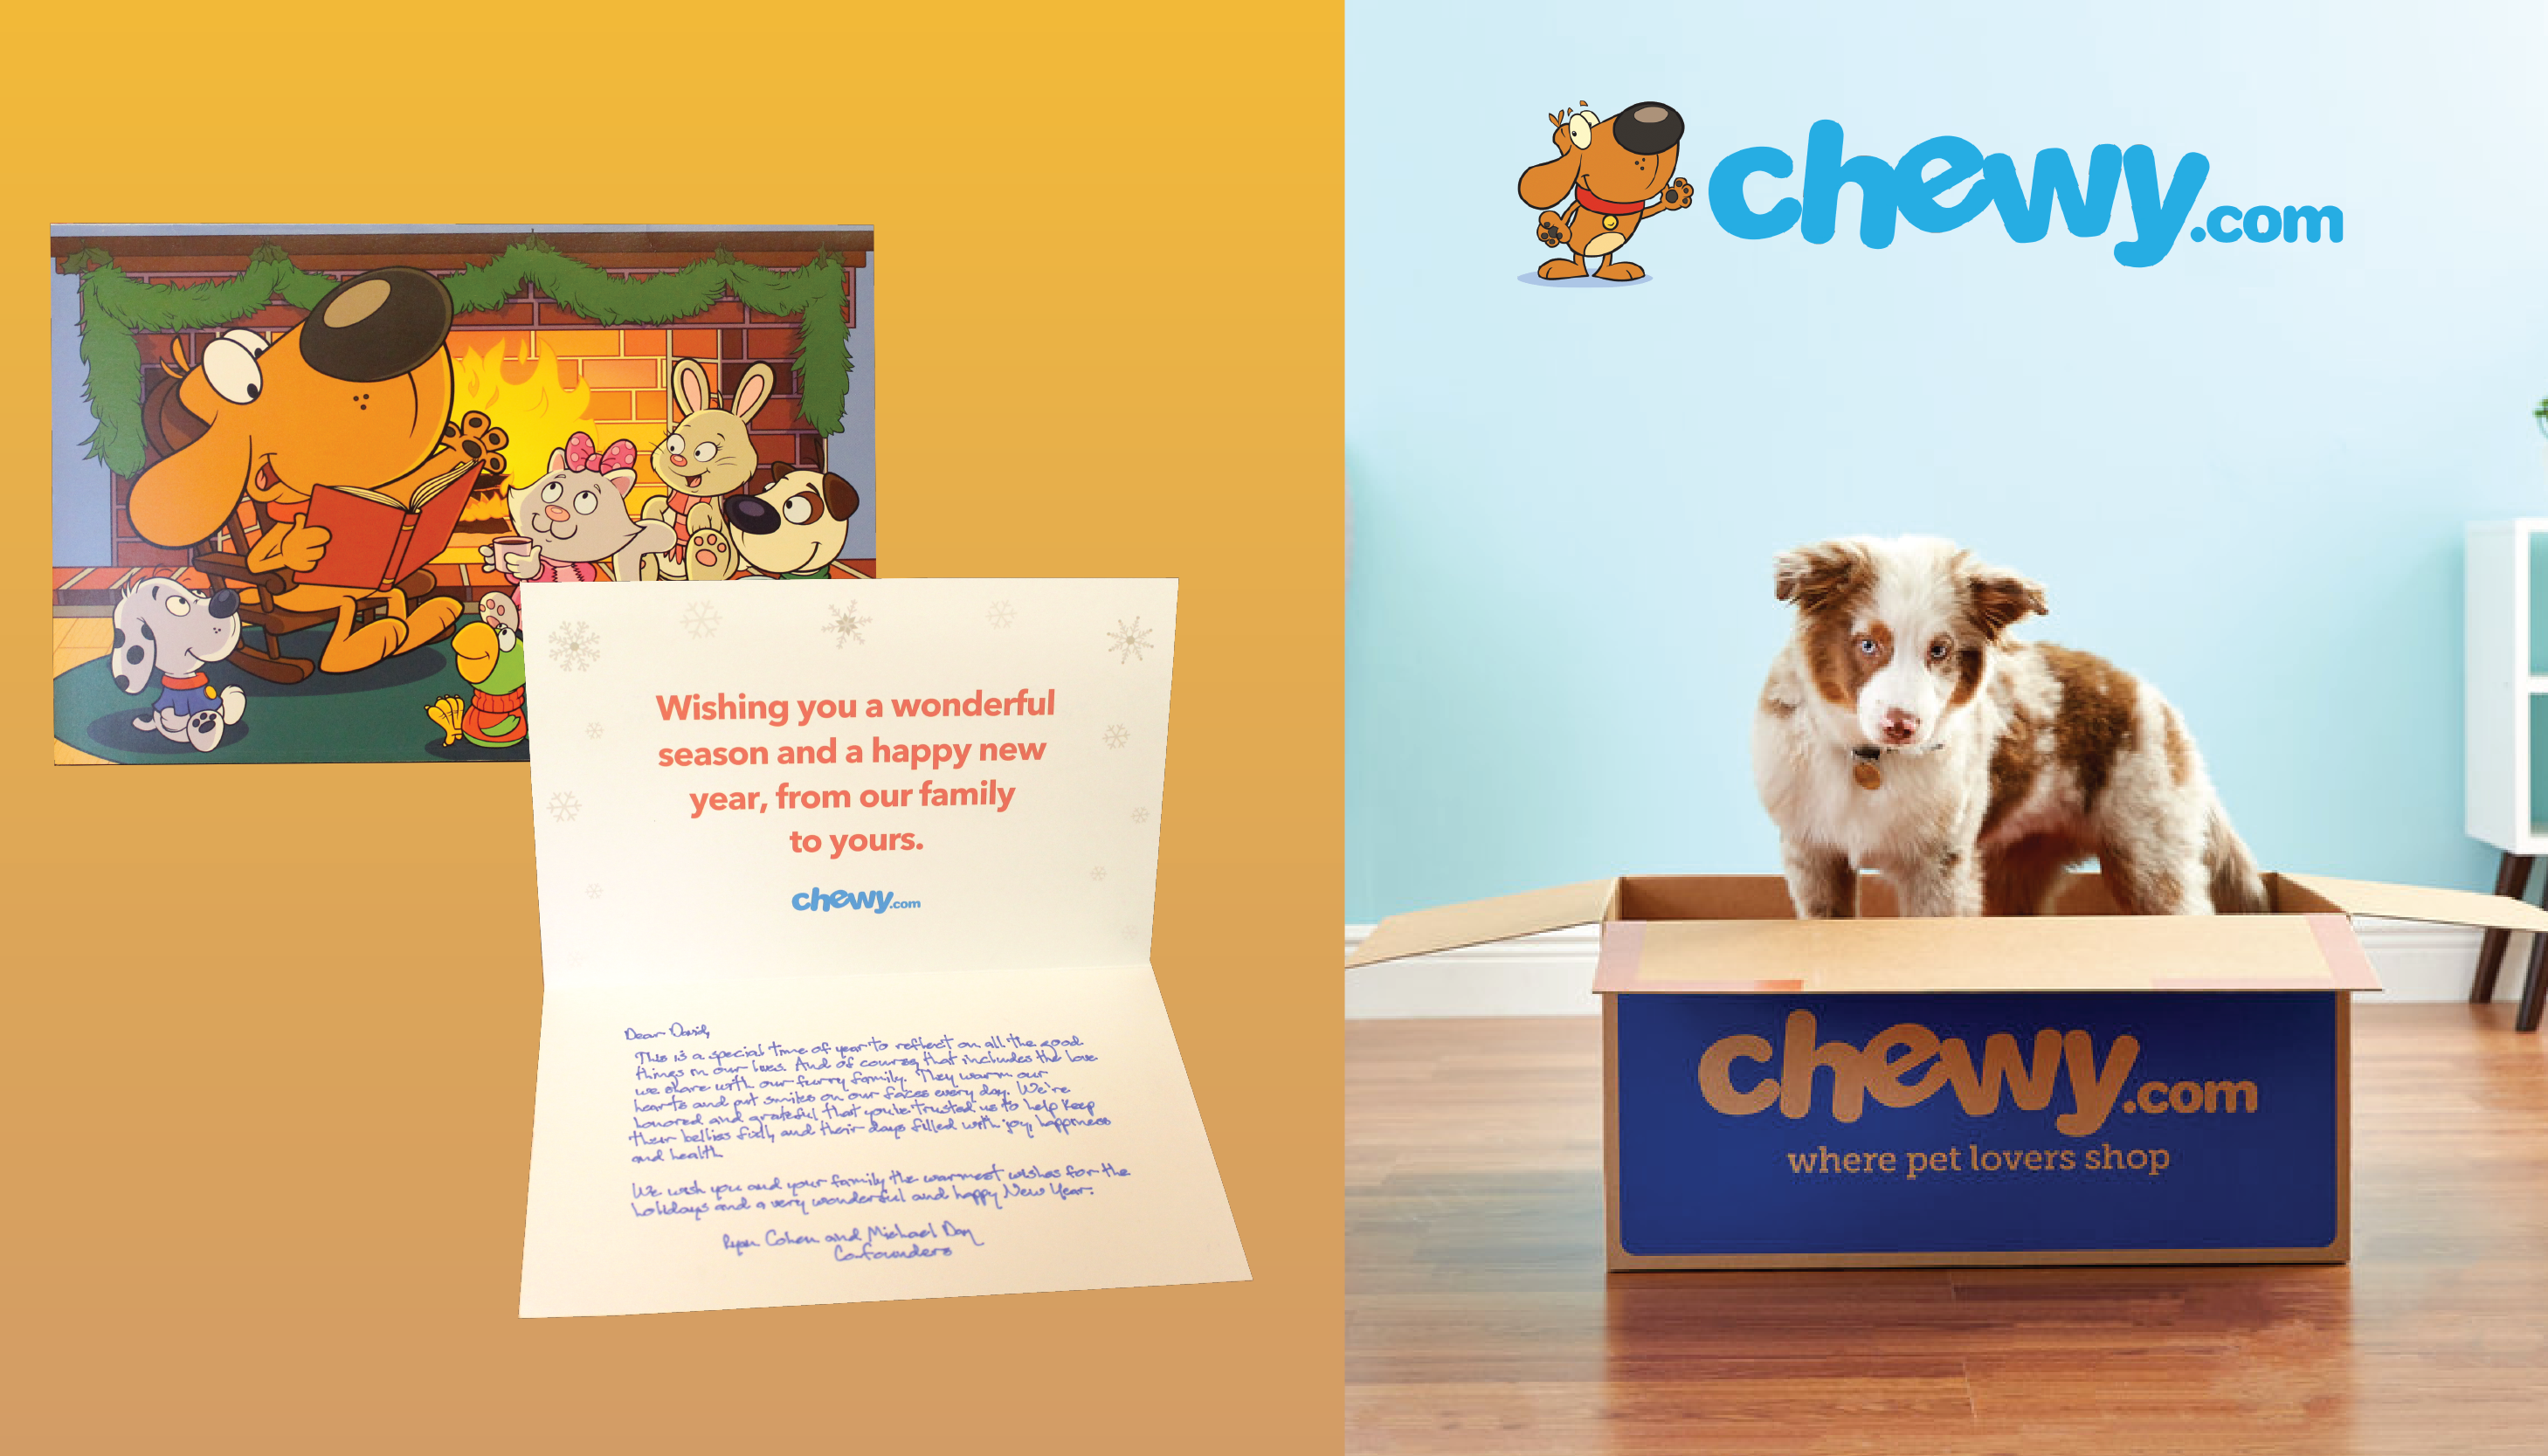 Why E-commerce Pet Retailer Chewy is Something to Bark About